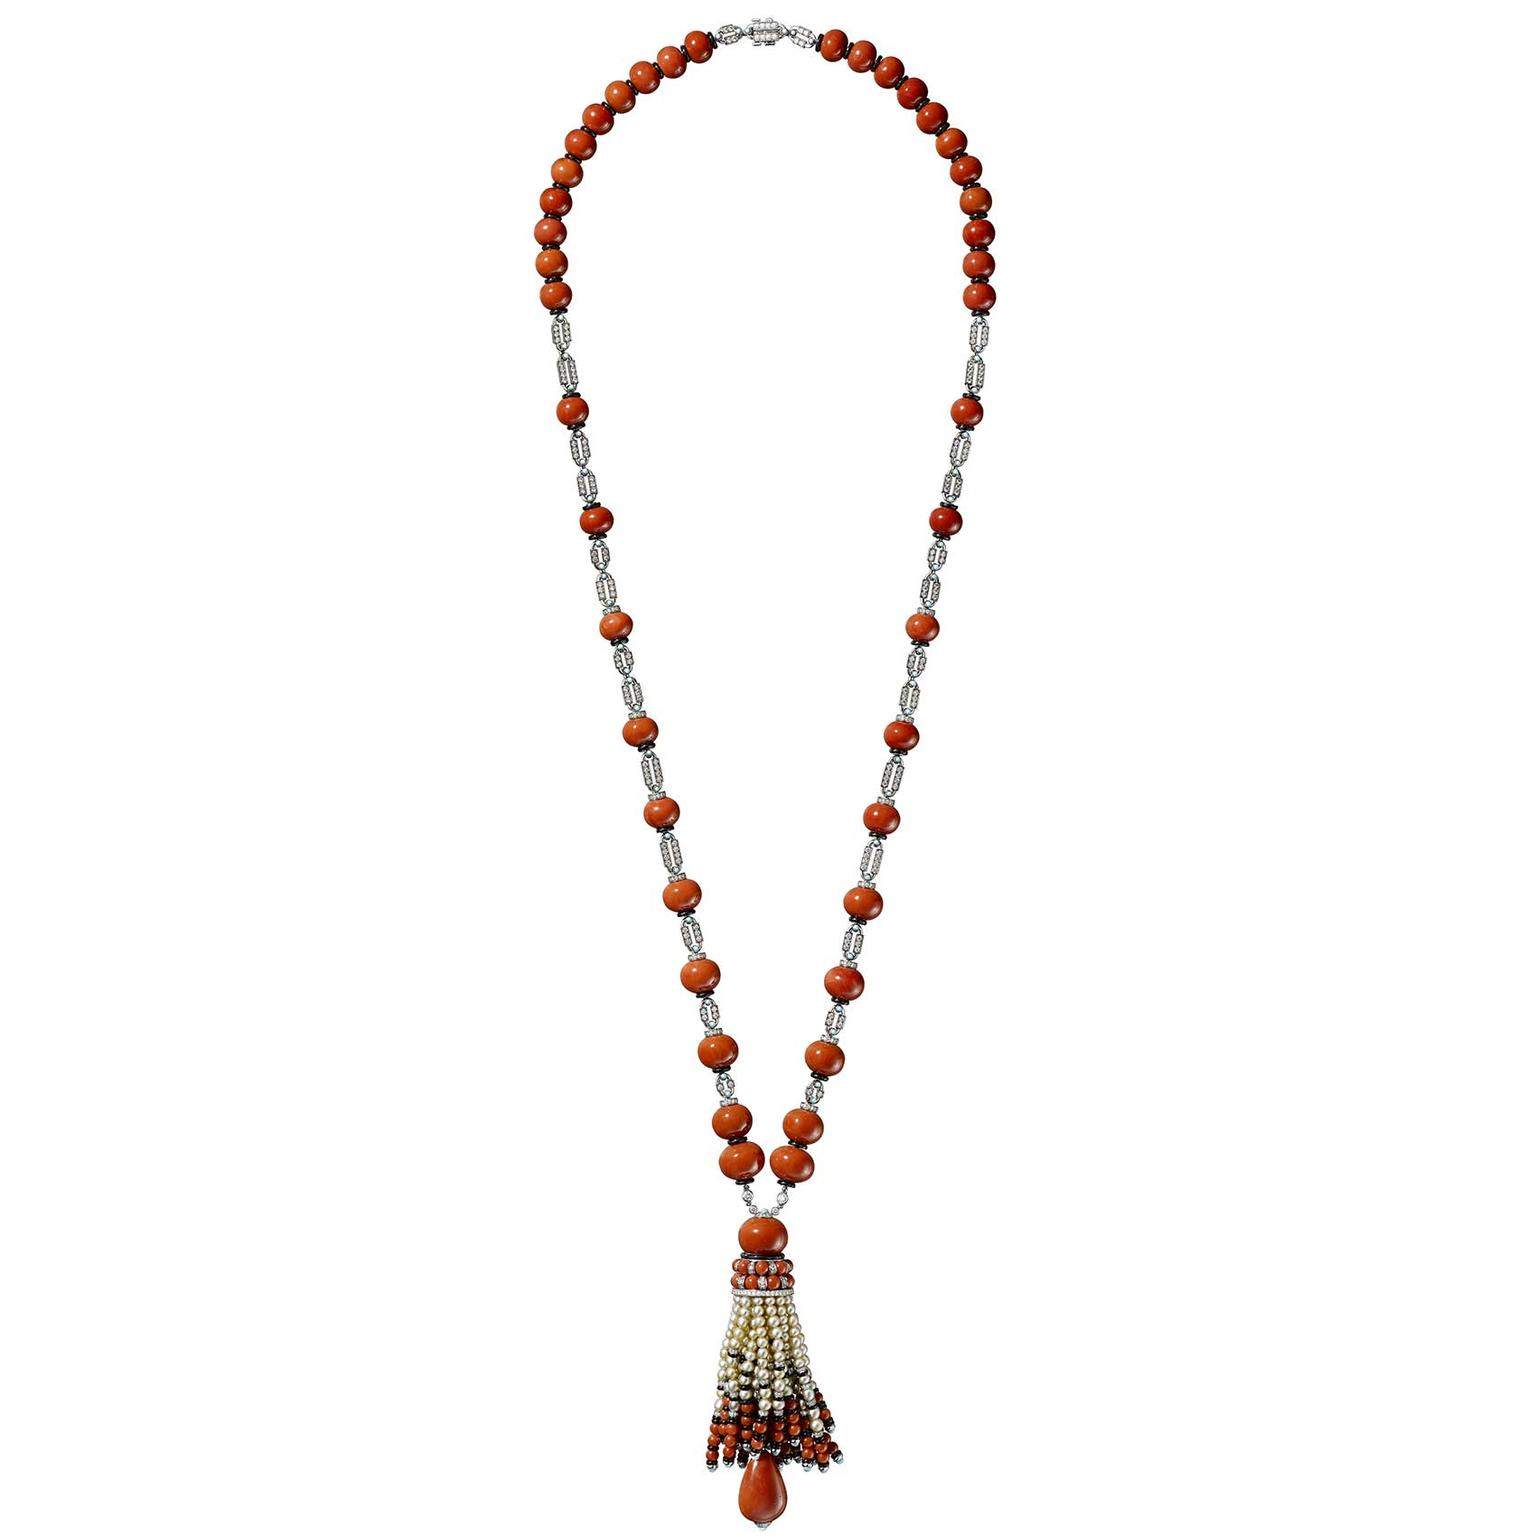 Cartier Étourdissant high jewellery necklace with coral beads and natural pearls